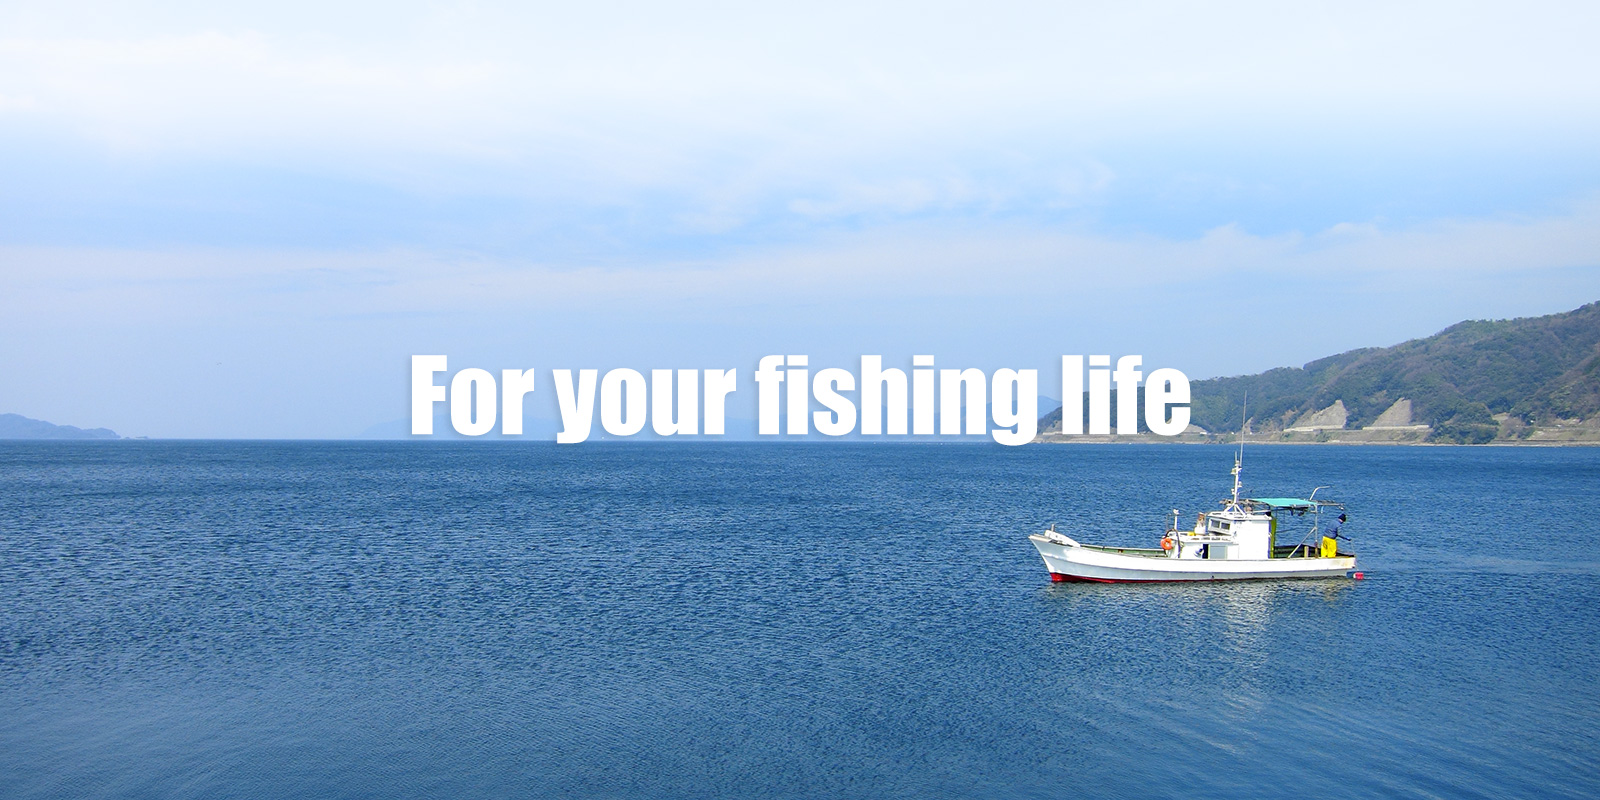 For your fishing life